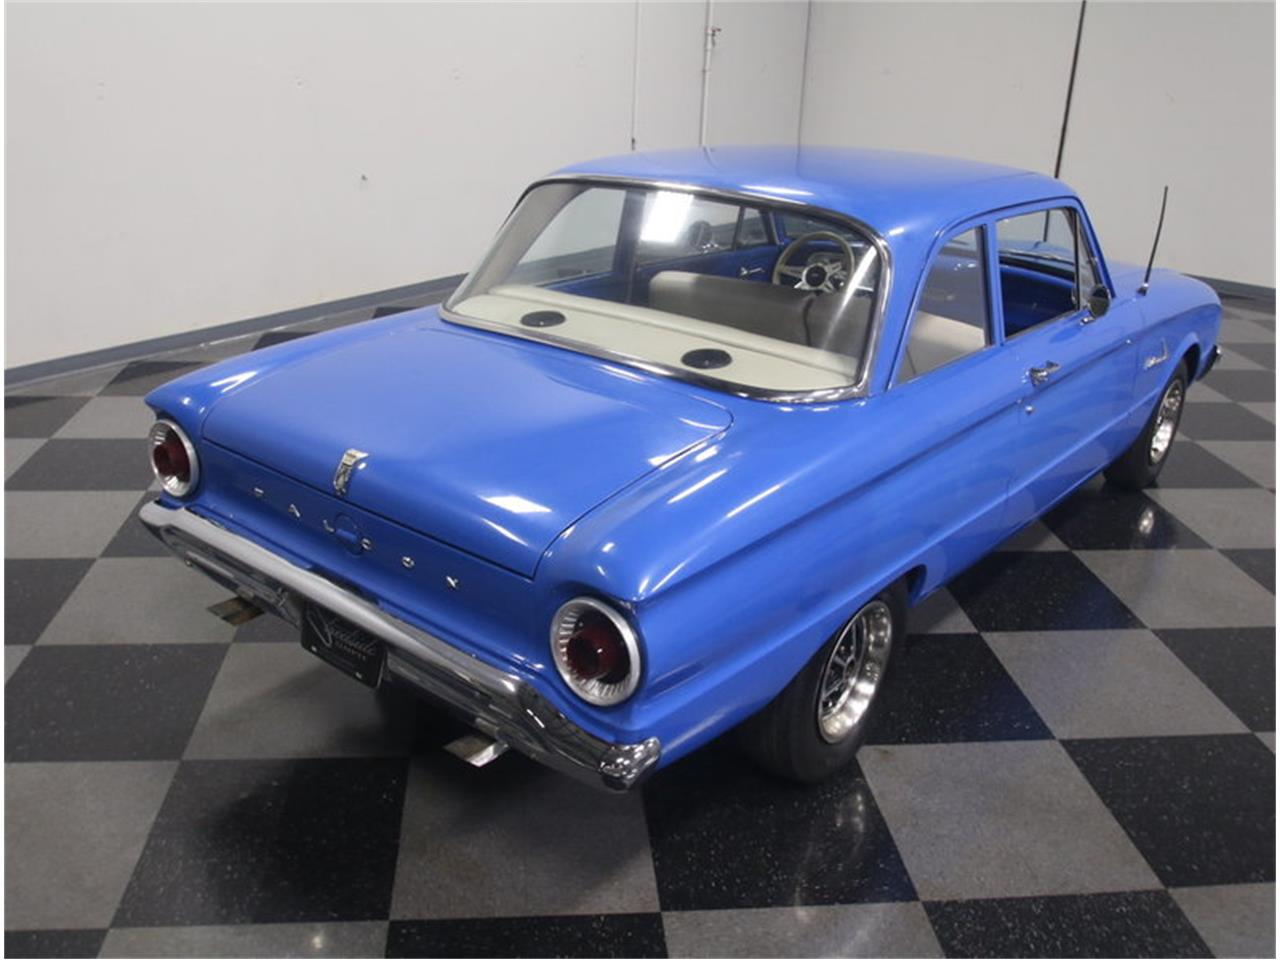 Large Picture of 1962 Ford Falcon located in Georgia - $14,995.00 Offered by Streetside Classics - Atlanta - MH3Z